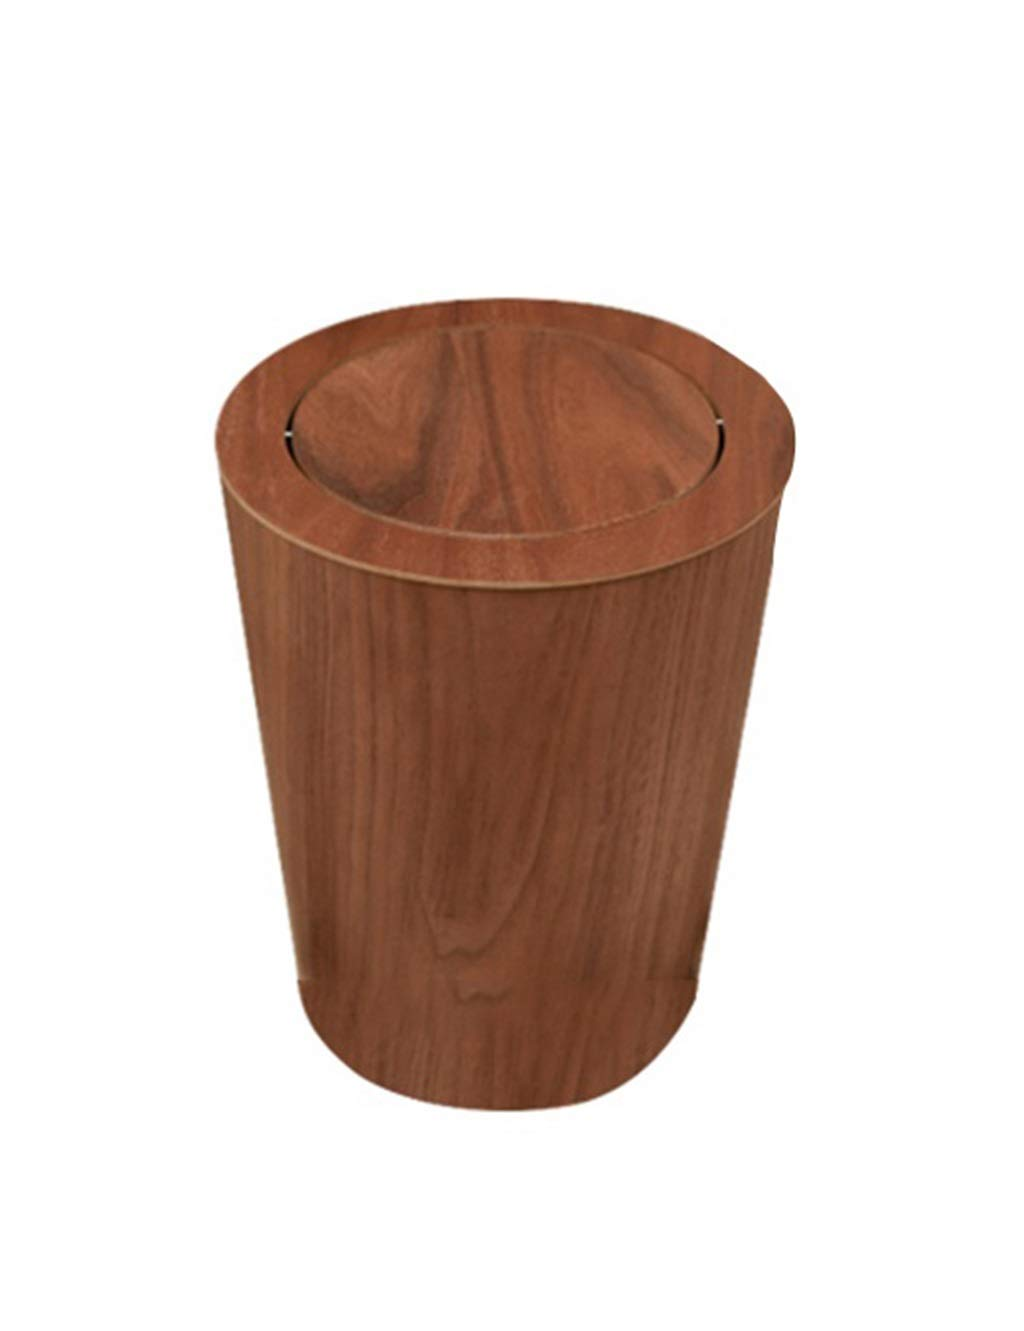 Liex-trash can with Lid/Swing Trash Can, Simple Wooden Material, Living Room Bedroom Wastebasket (23×23×30 cm)